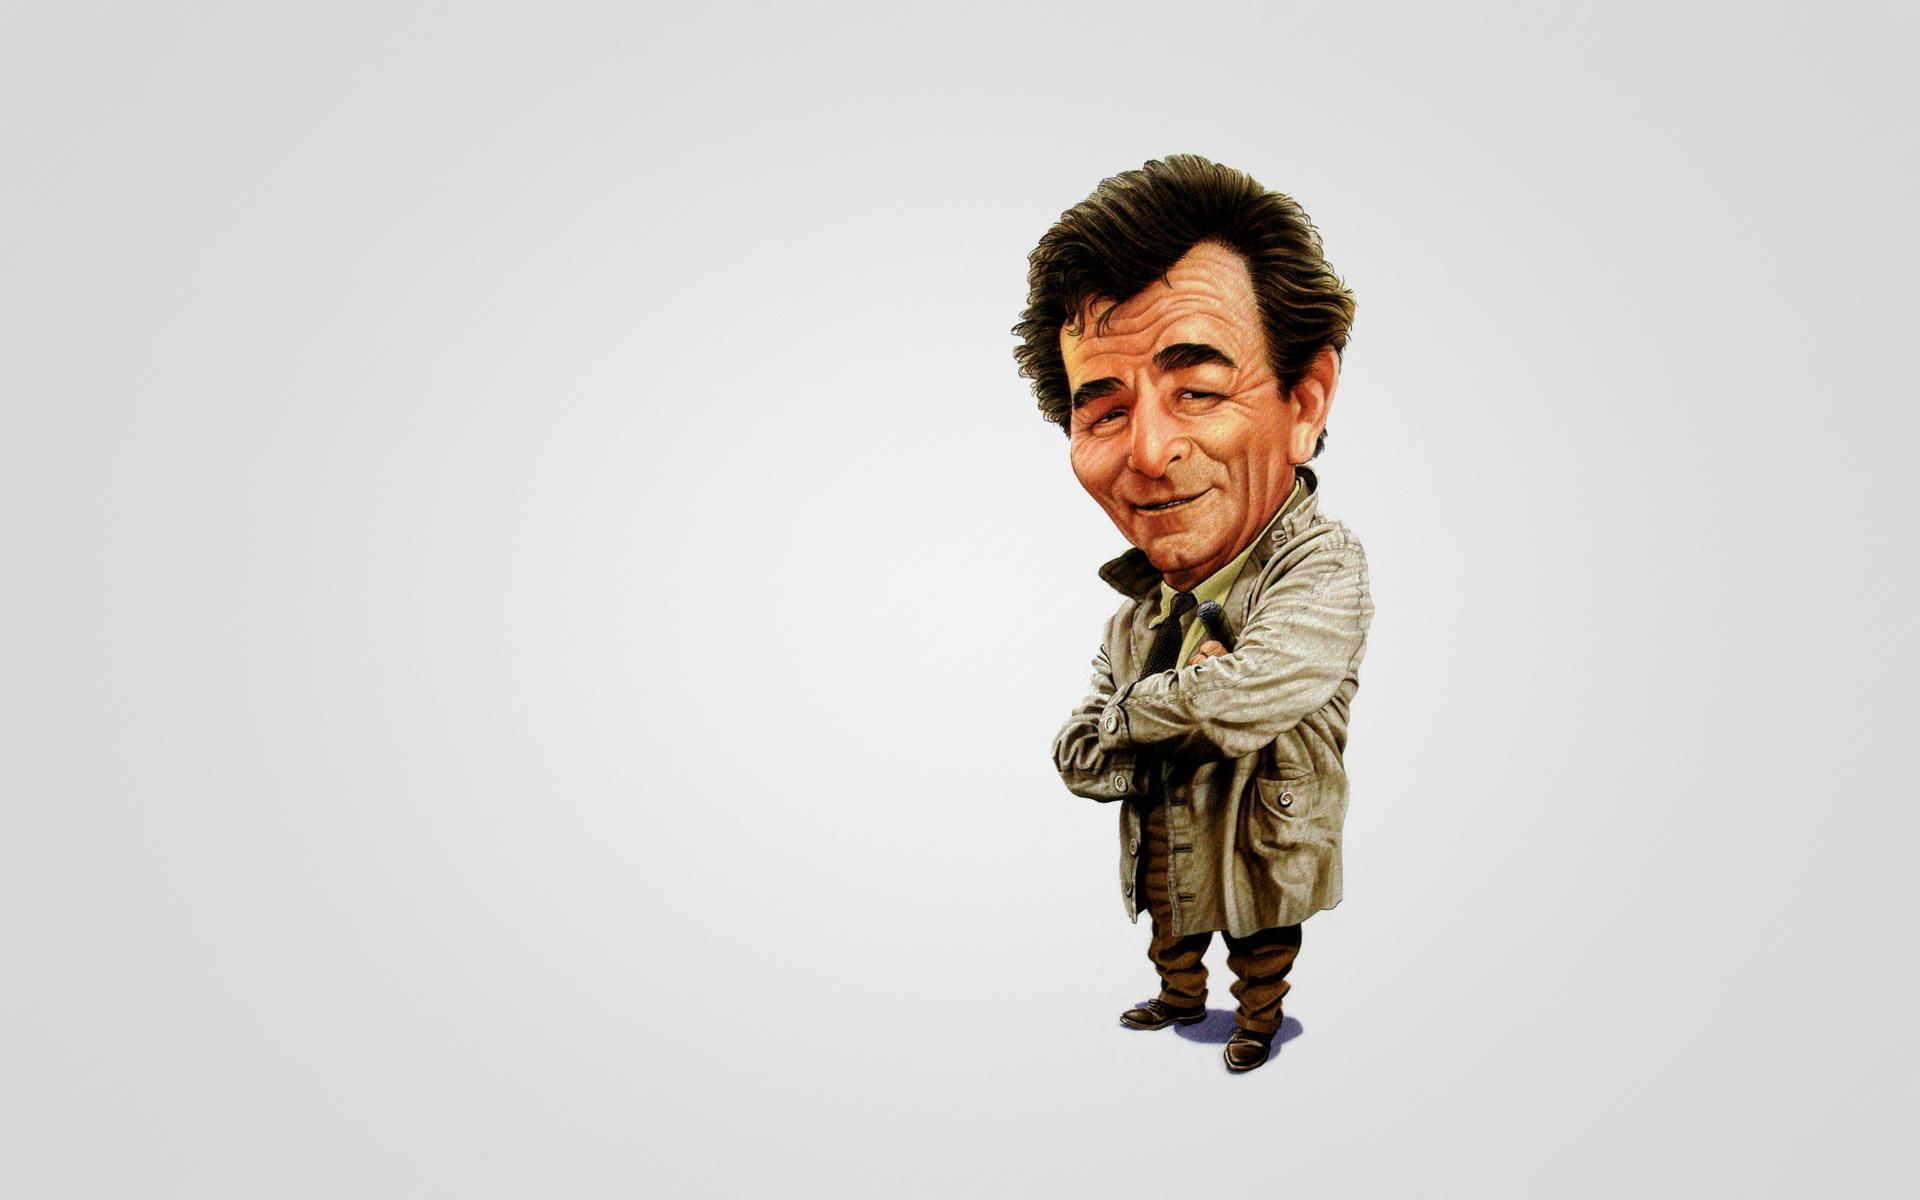 Movies Peter Falk Columbo Art #2278 Wallpapers and Free Stock Photos ...